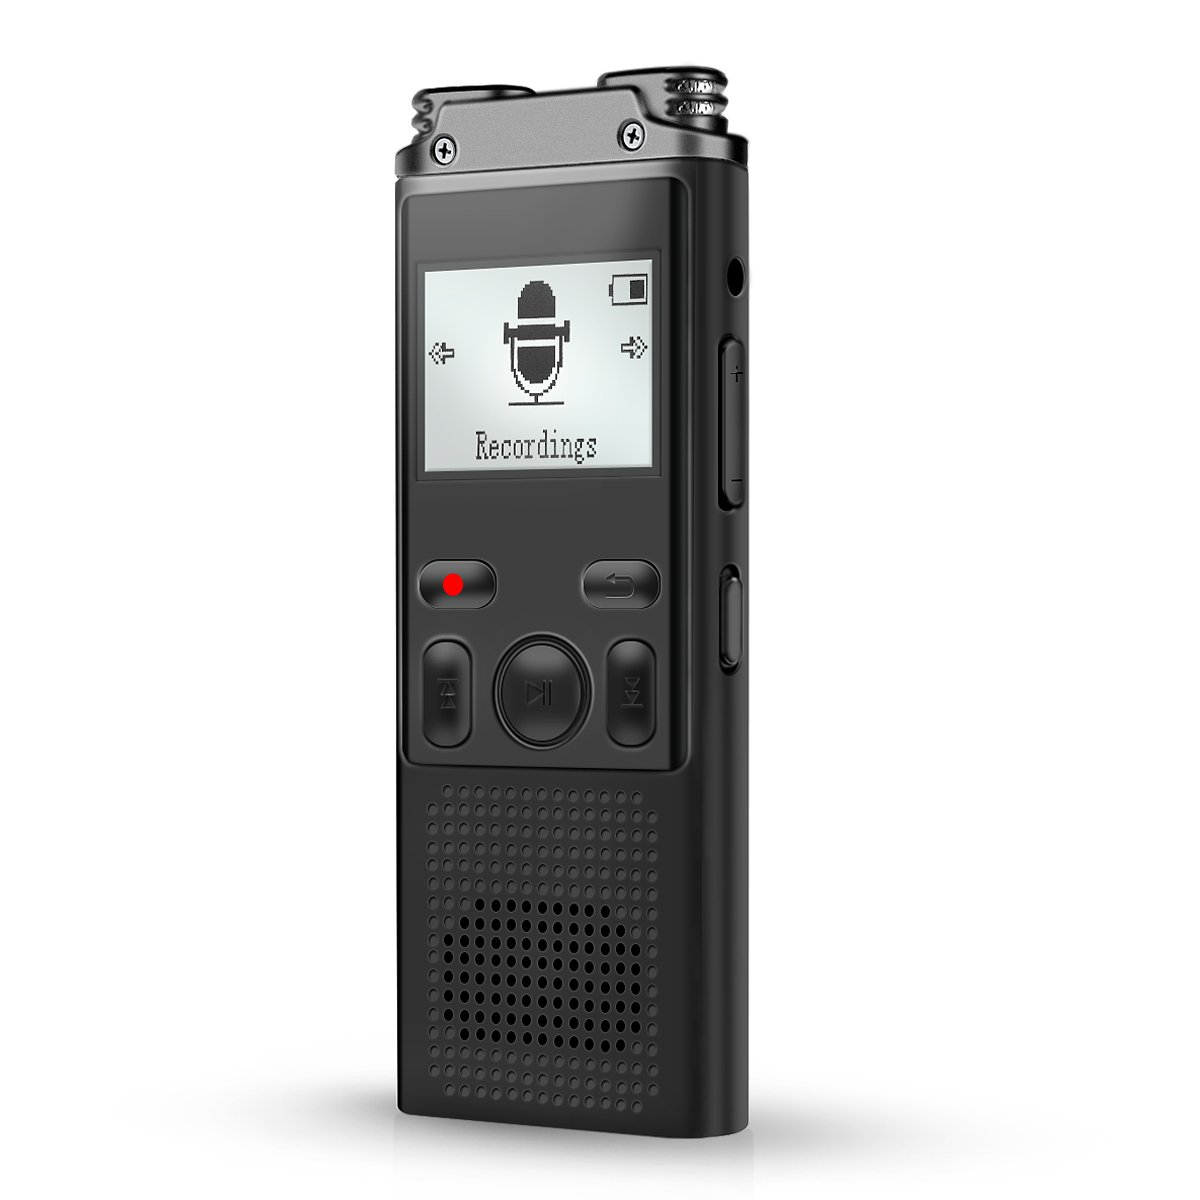 Voice Recorder, SoundVoice 8GB Digital Voice Recorder, Voice Activated 1536kpbs PCM Sound Recorder with MP3 Player & Micro USB Port, Double Noice Cancelling Microphone, Auto Save Function, 64G TF Card